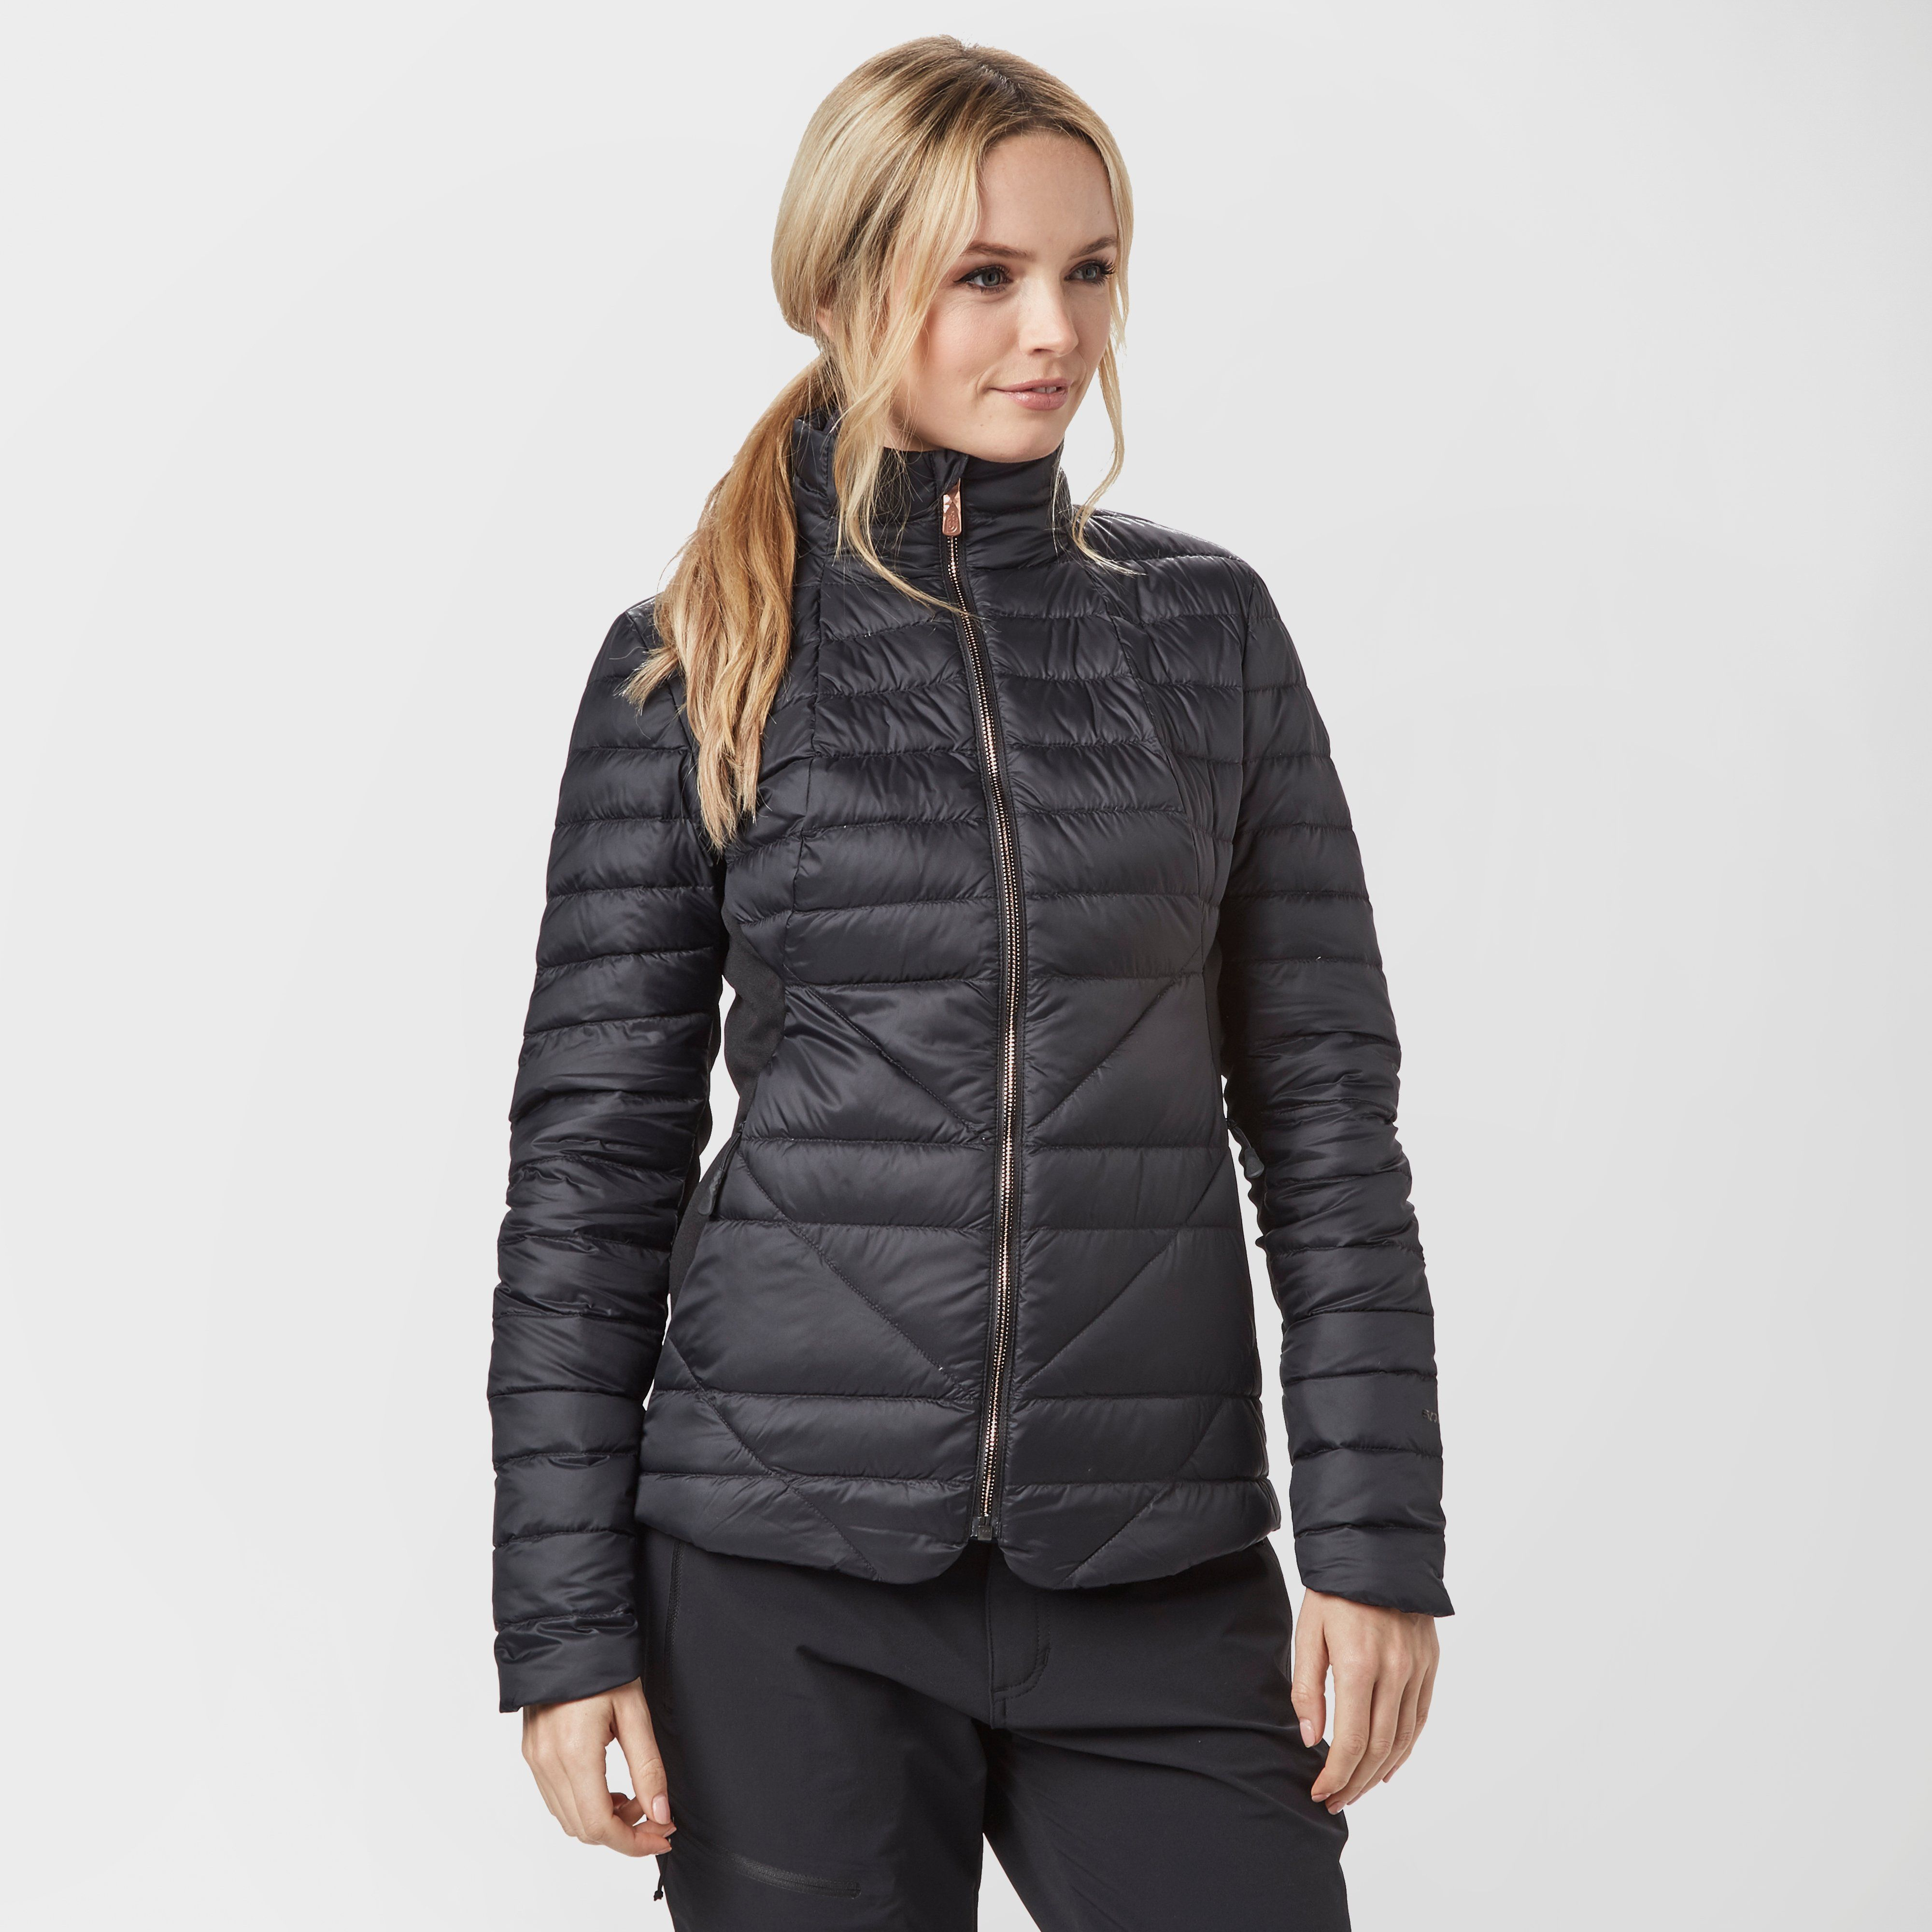 THE NORTH FACE Women's Lucia Down Jacket